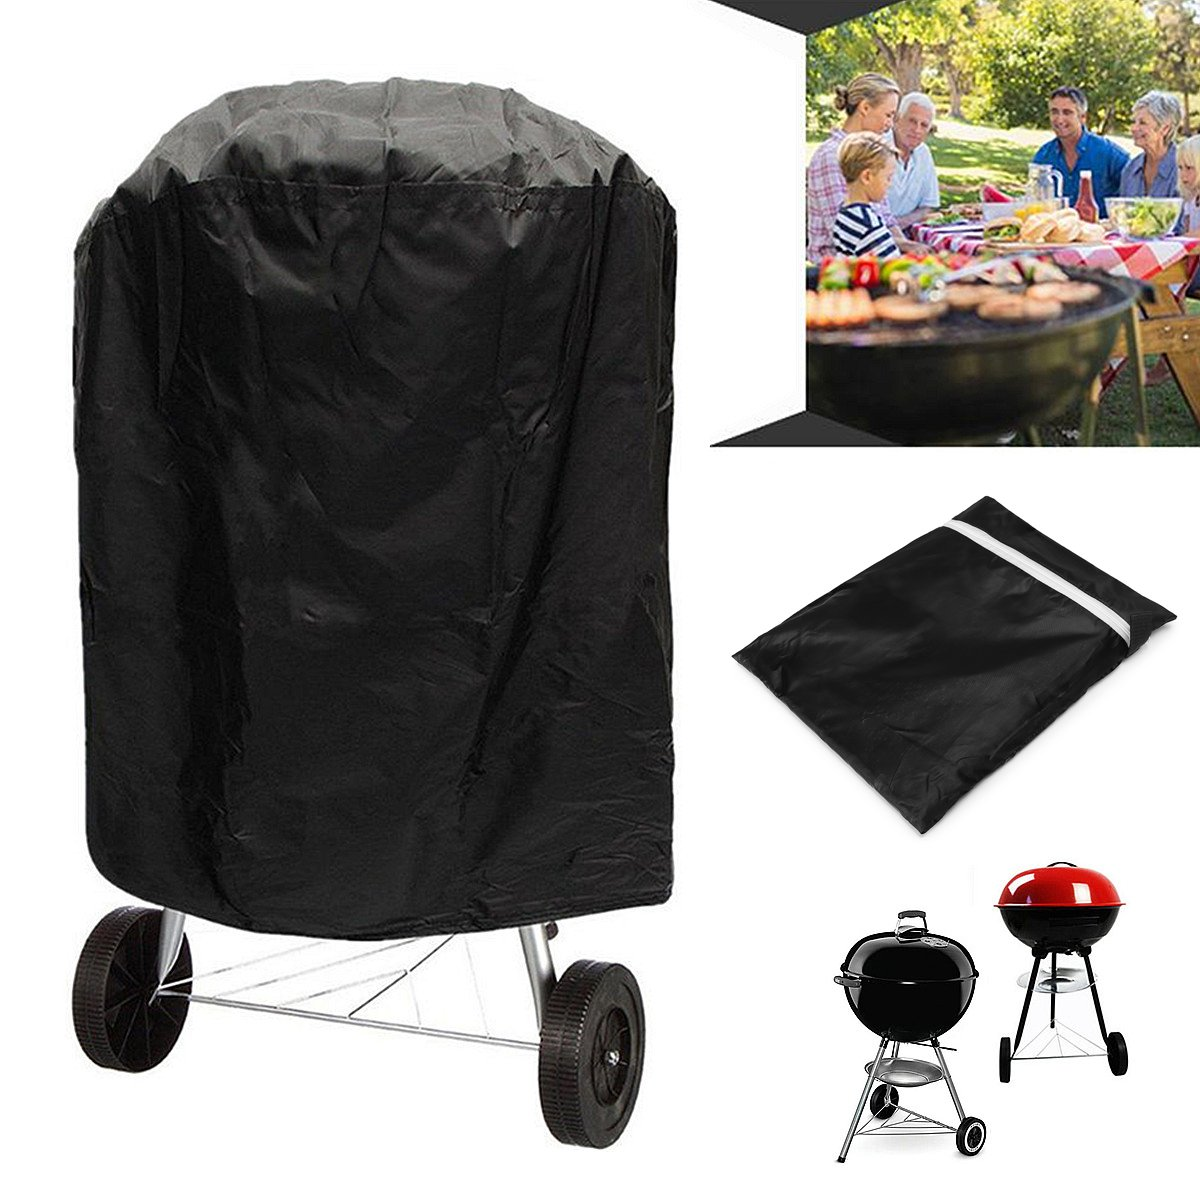 Outdoor Waterproof Round Kettle BBQ Grill Barbecue Cover Protector UV Resistant LeB